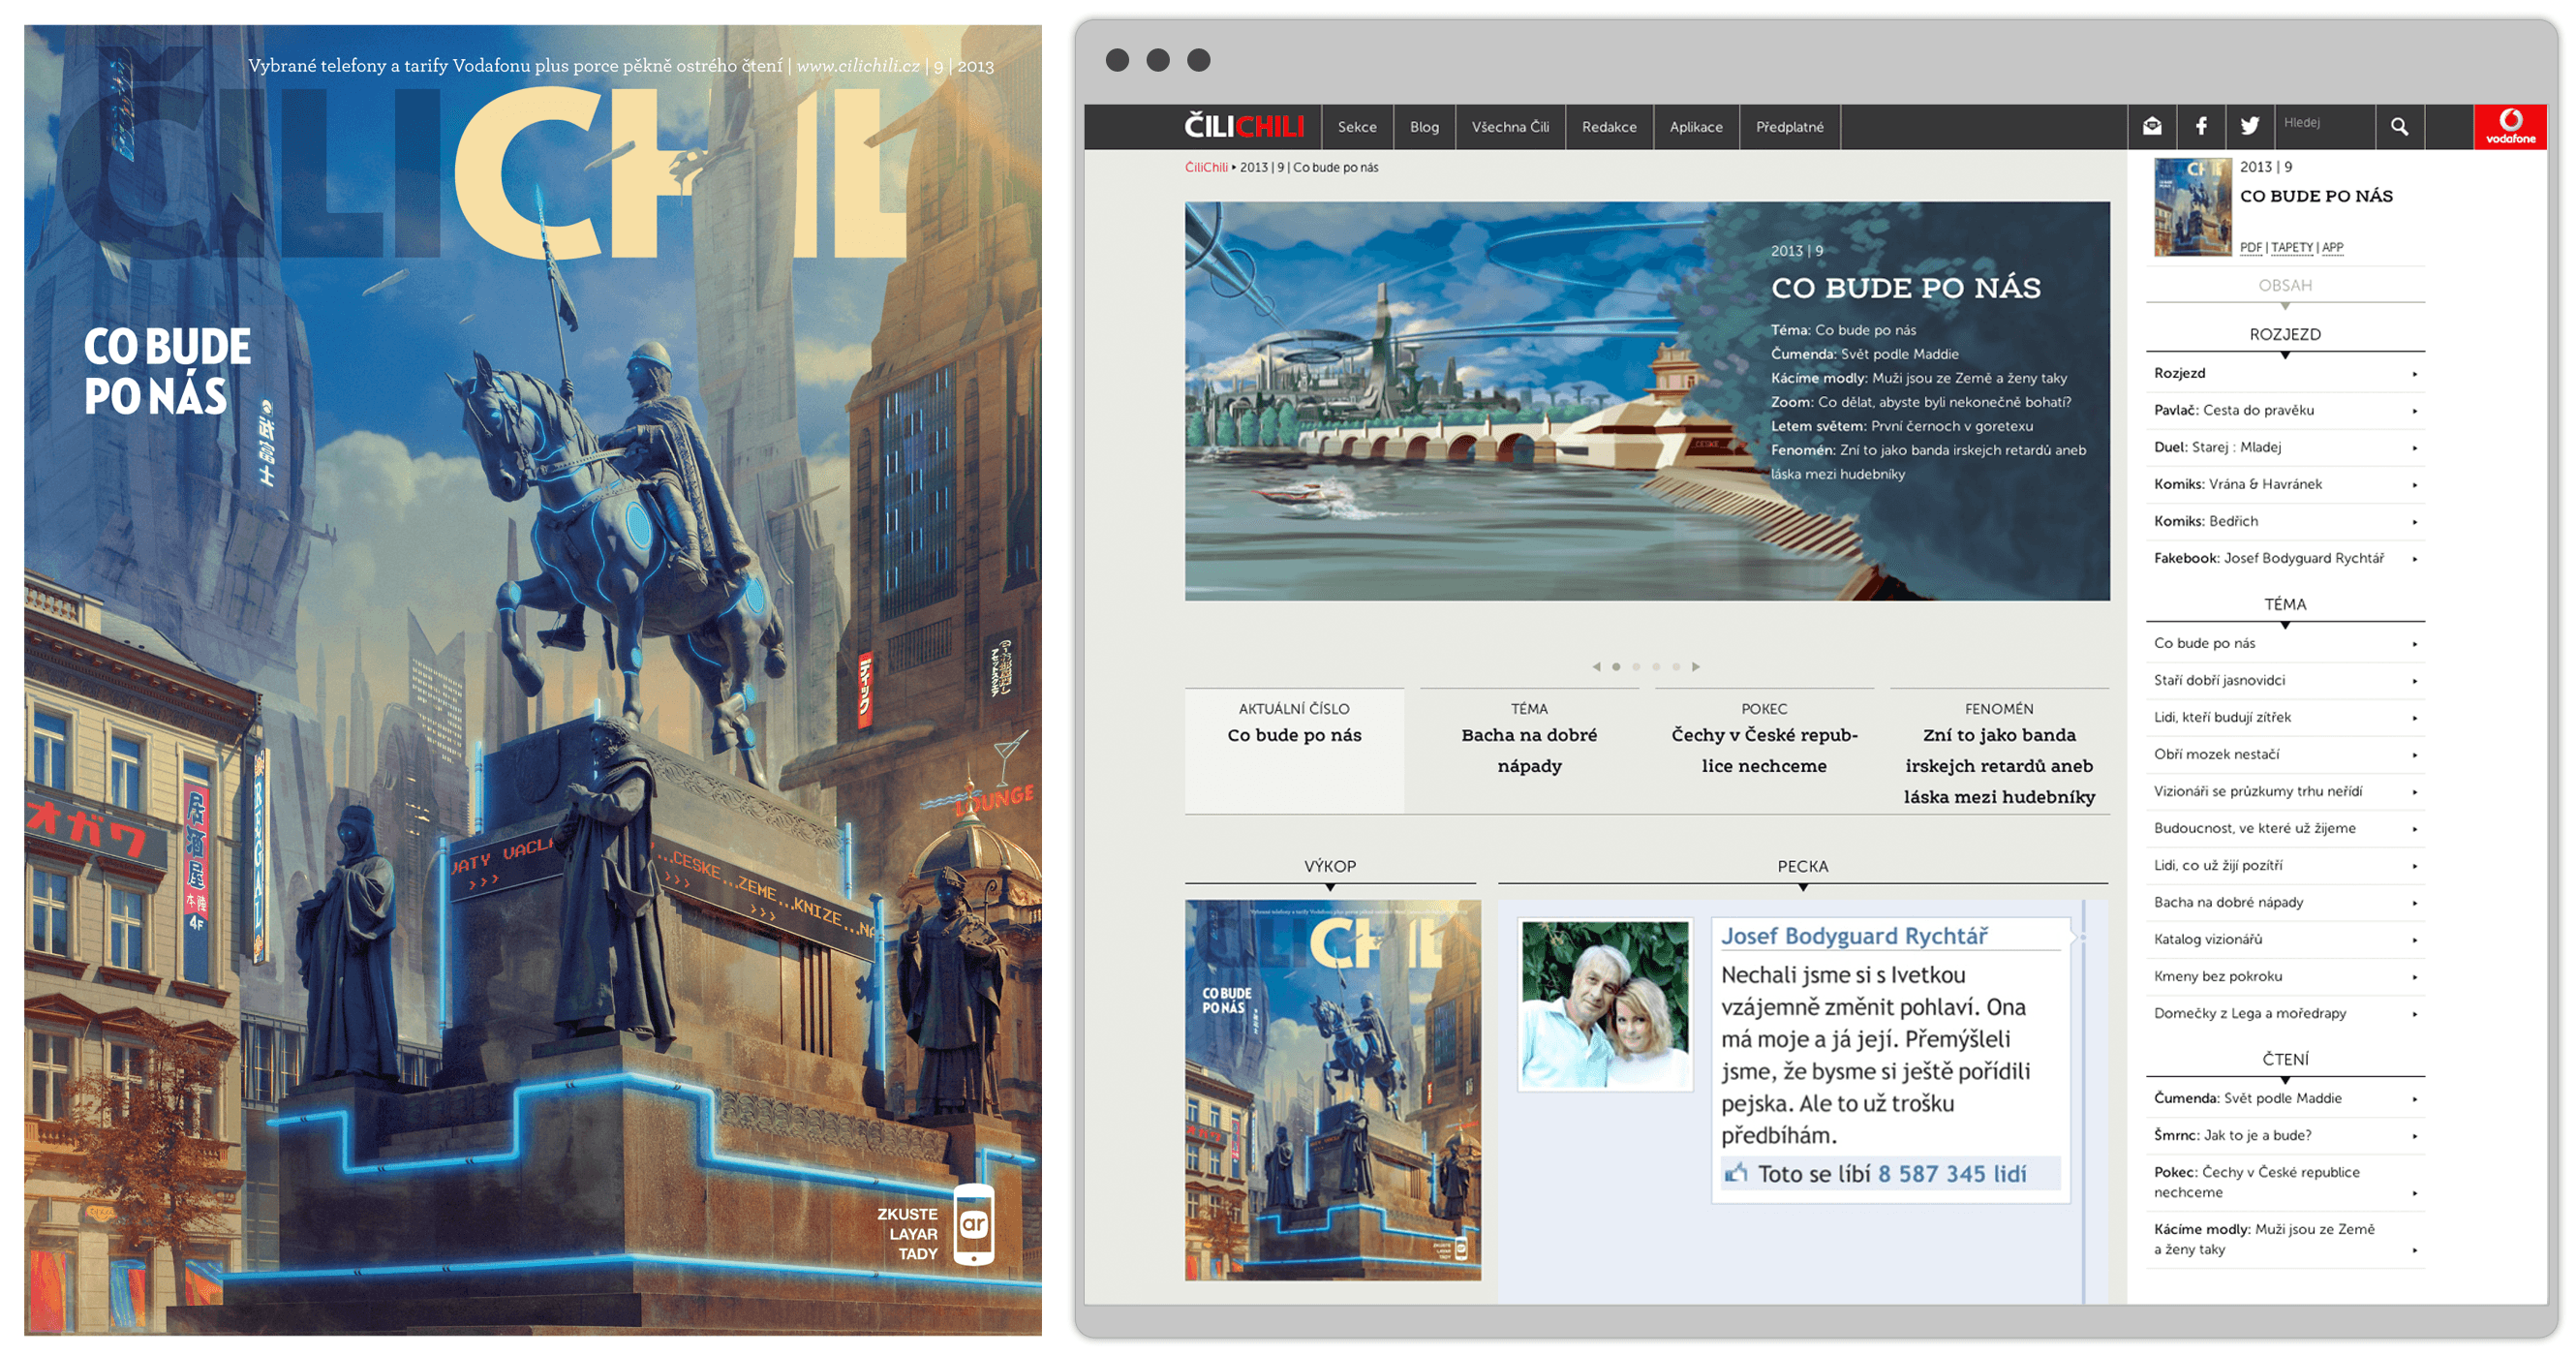 Transforming Vodafone's customer magazine Cilichili into an online mobile ambassador